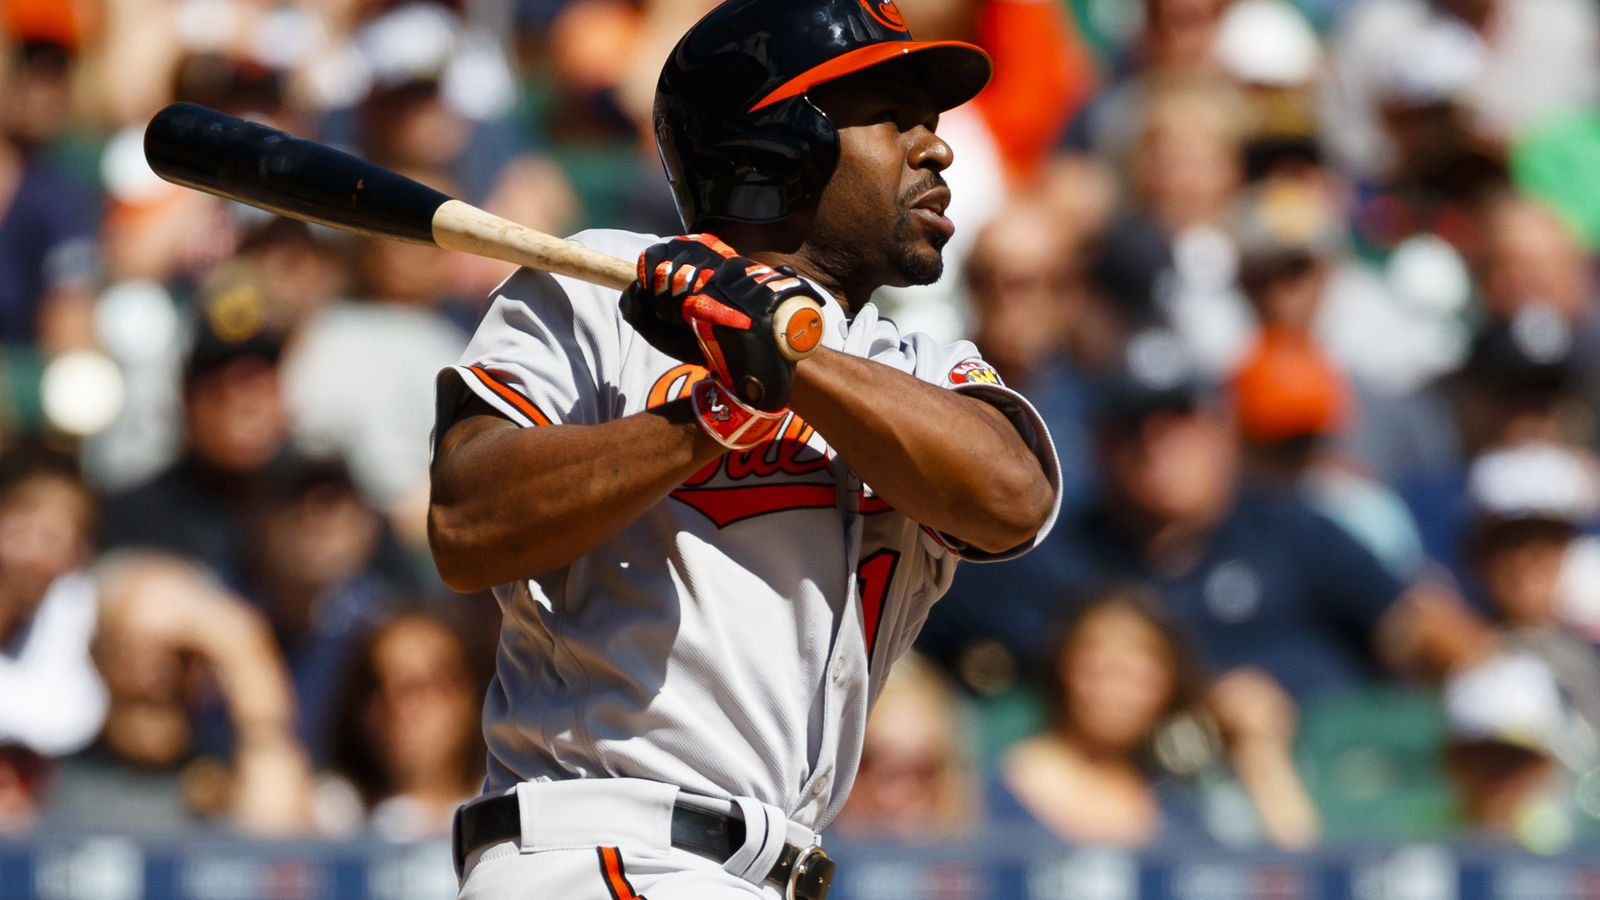 Tillman out duels Verlander, Orioles win 3-1 to take series - Camden Chat